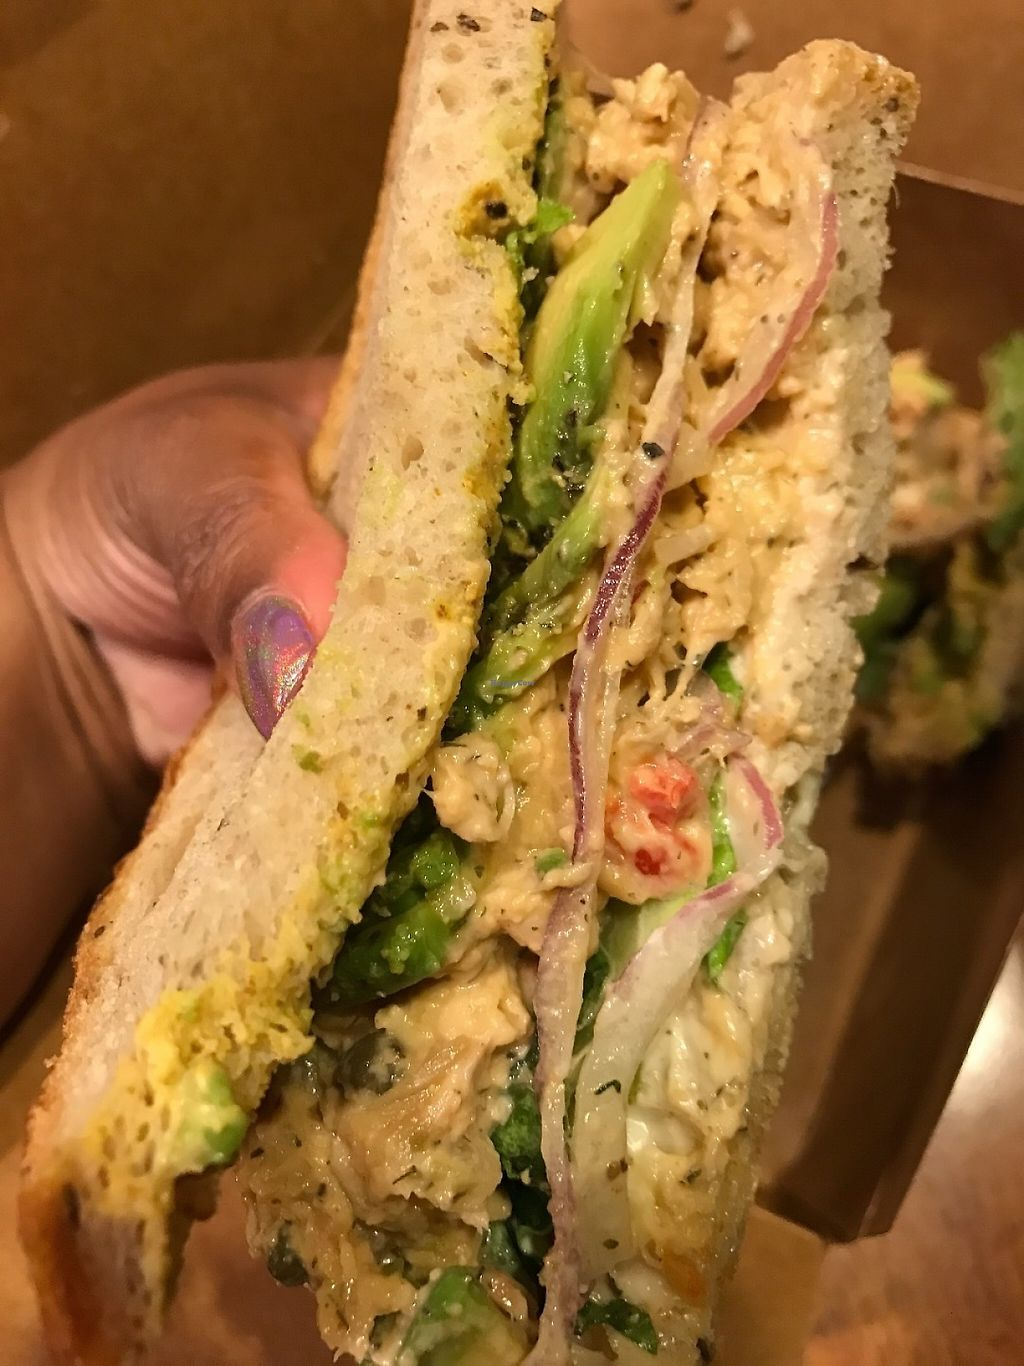 "Photo of The Butcher's Son  by <a href=""/members/profile/Tigra220"">Tigra220</a> <br/>Tempeh Tuna Salad Sandwich  <br/> May 18, 2017  - <a href='/contact/abuse/image/70334/259729'>Report</a>"